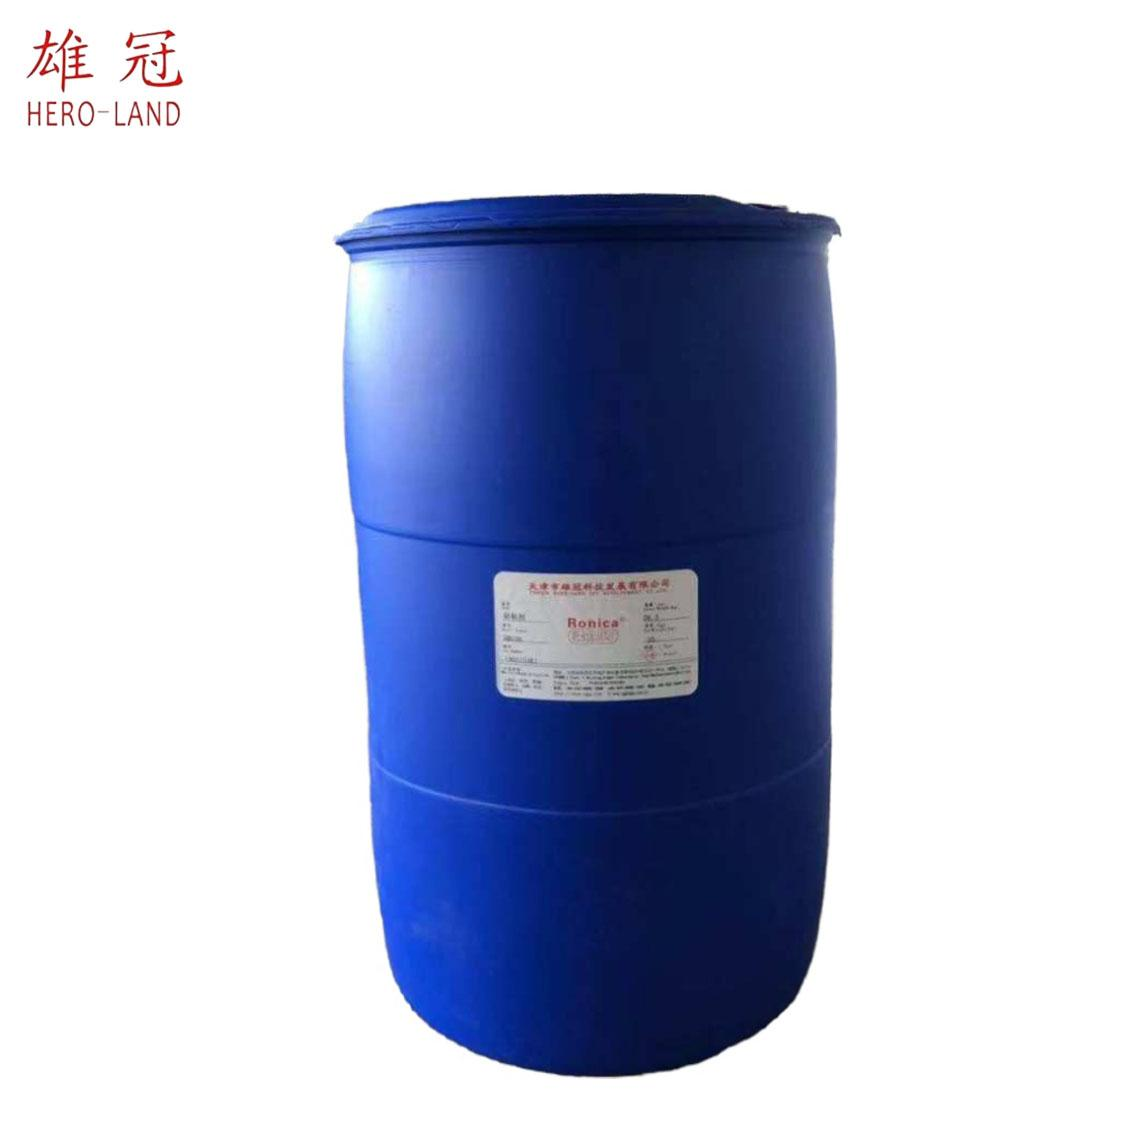 Release Agent for Paper Dryer GT-95 2